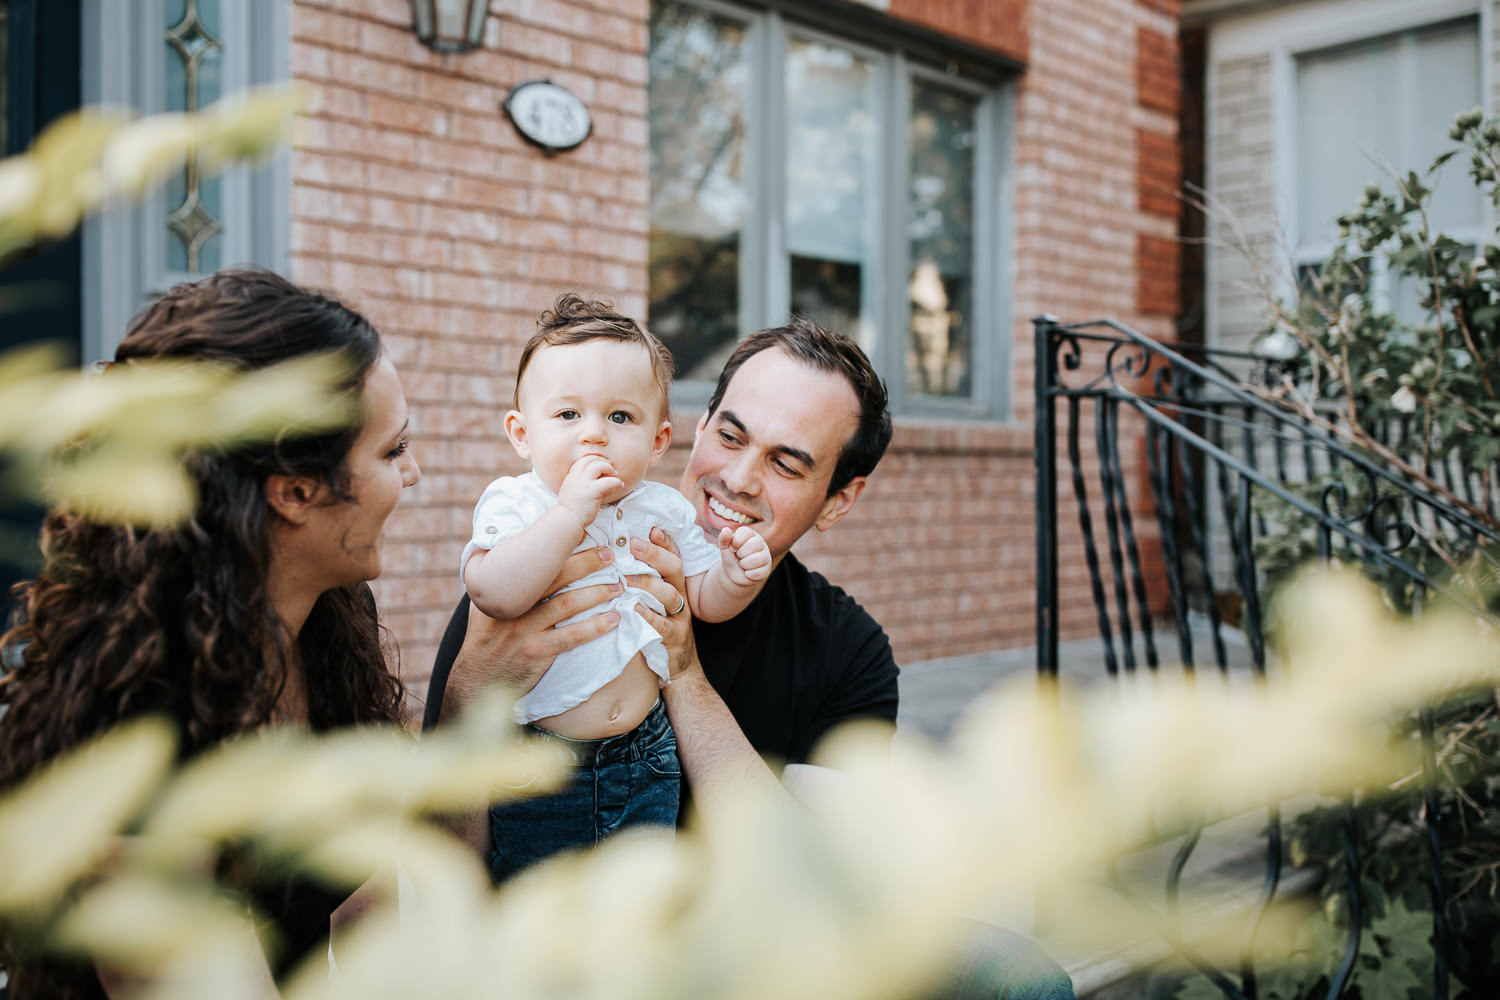 family of 3 sitting on front porch, 9 month old baby boy with dark hair in white t-shirt and jeans standing in dad's lap, mom smiling at son and husband - York Region Golden Hour Photography